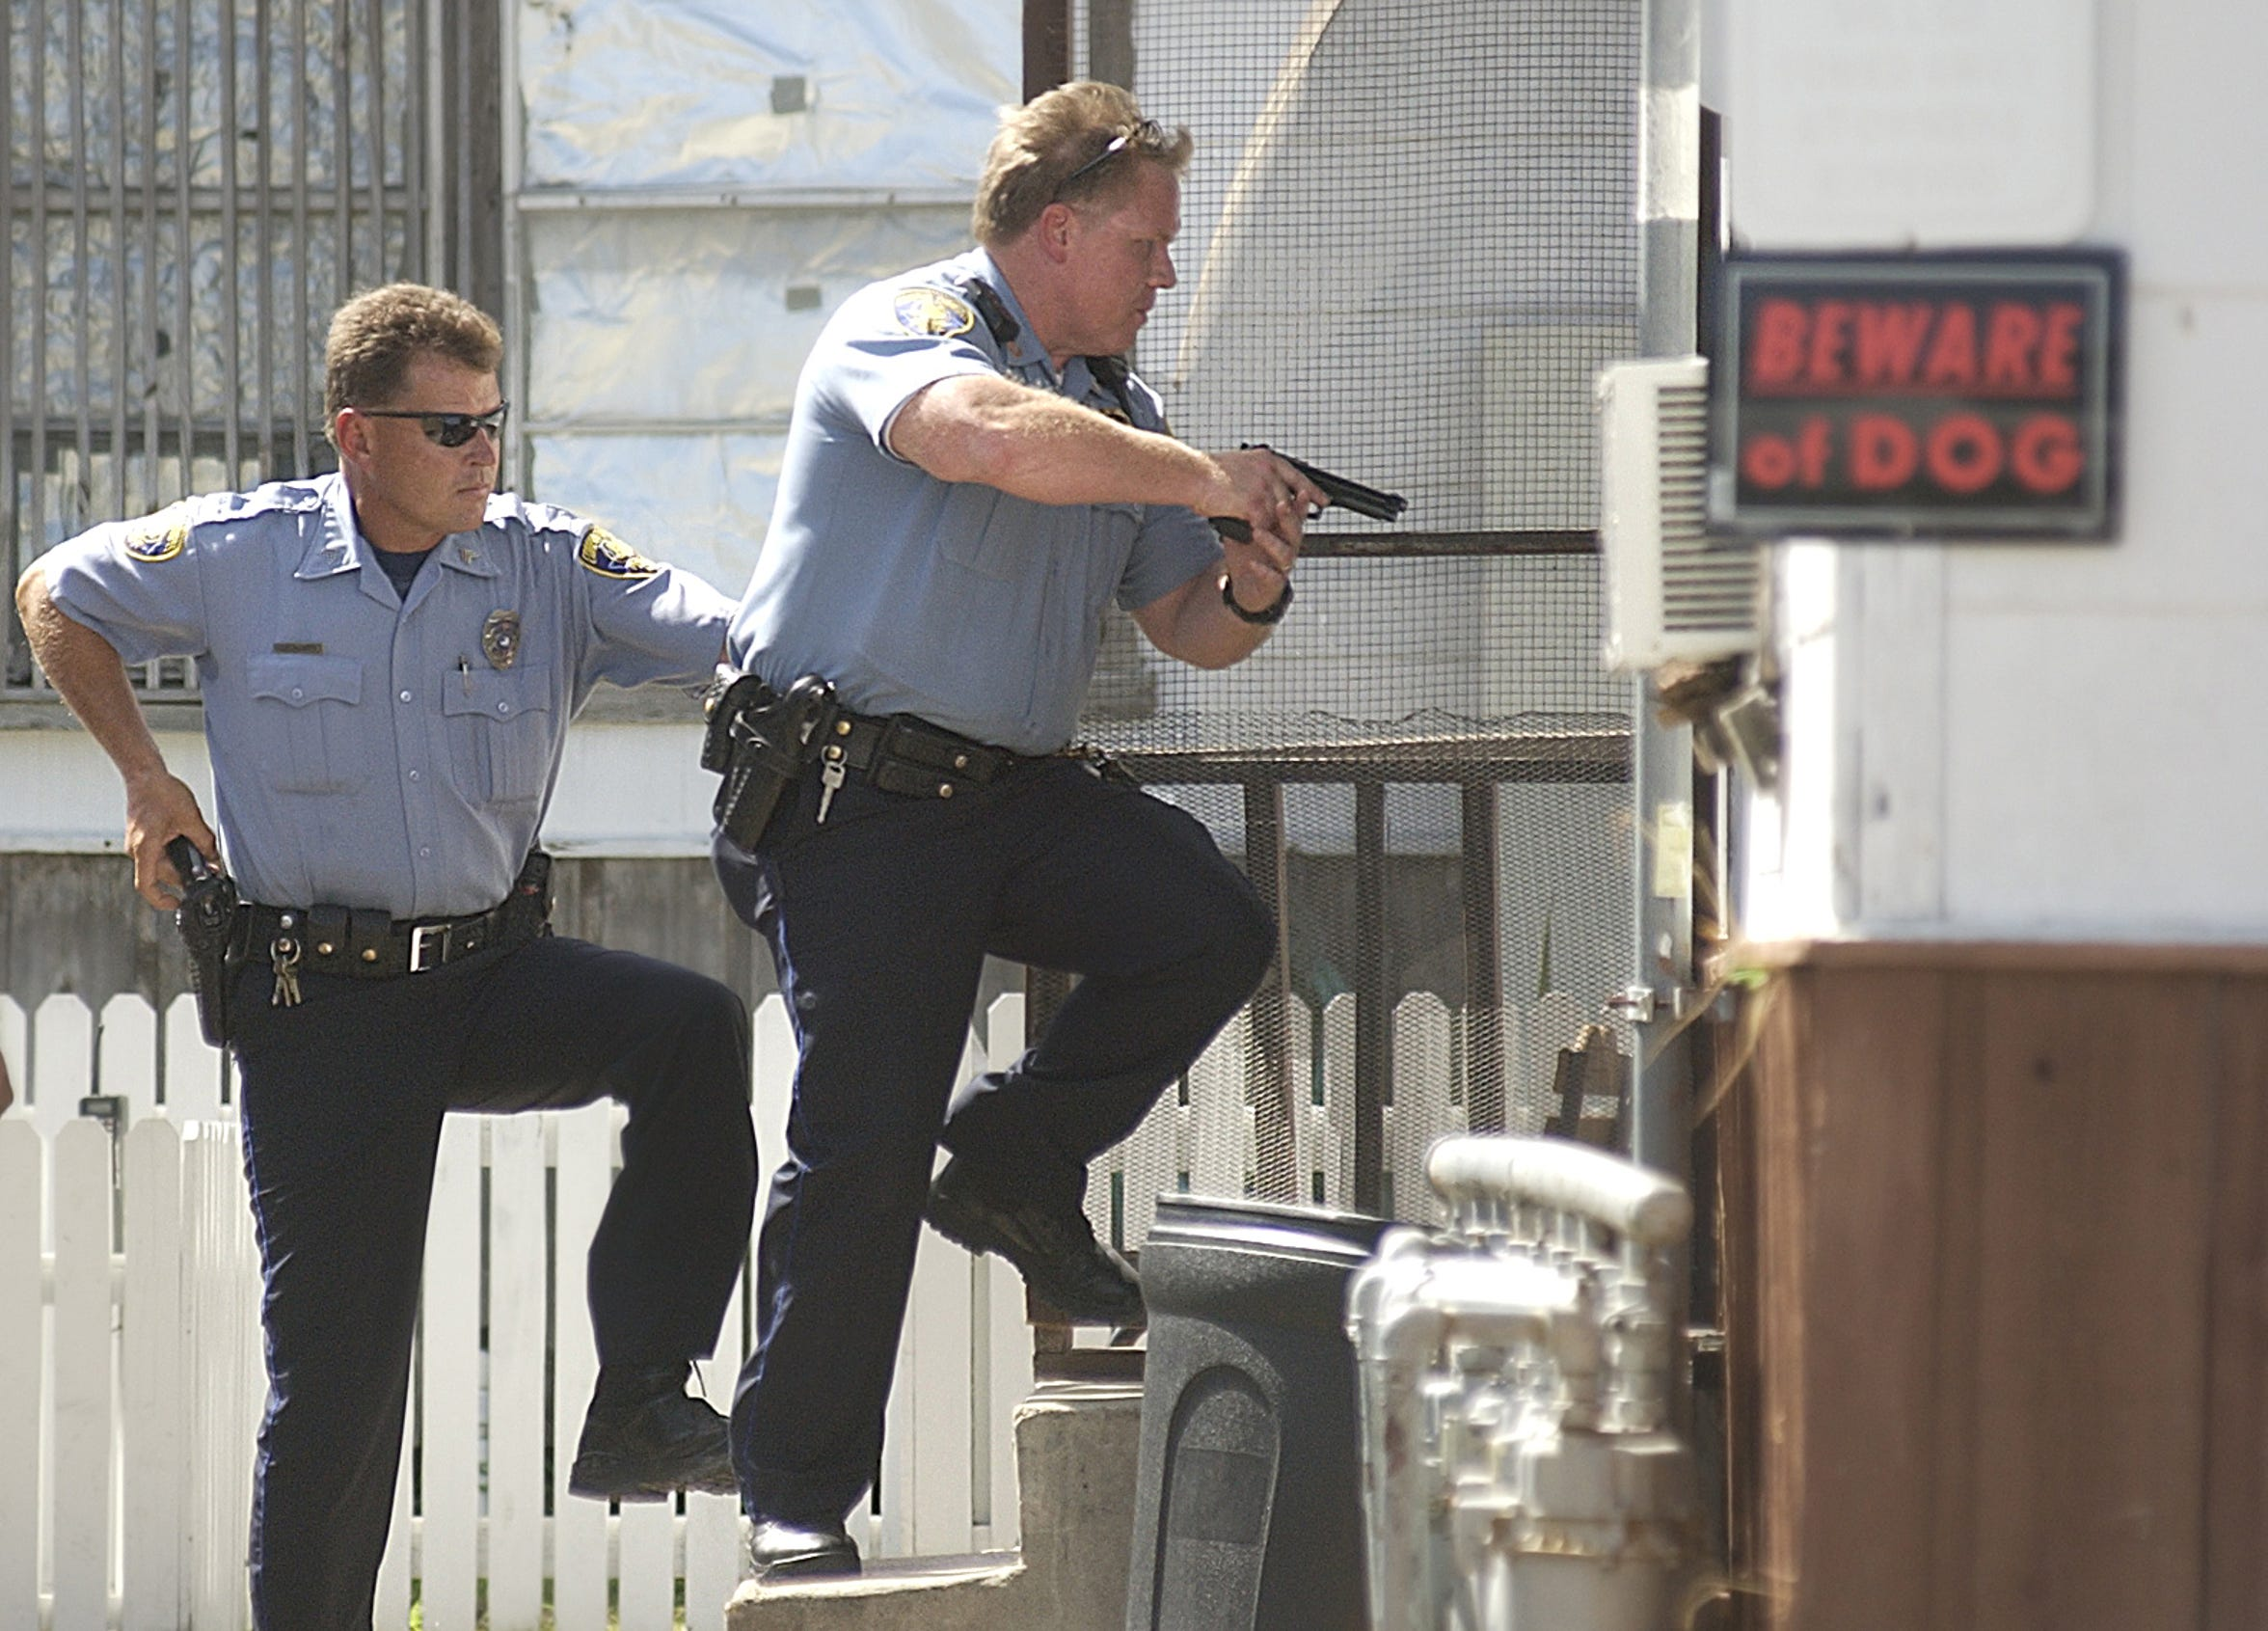 In this 2004 photo, Corpus Christi Police Officer Chris Hooper and Officer David Cook enter an apartment in the 1200 block of Barton St.